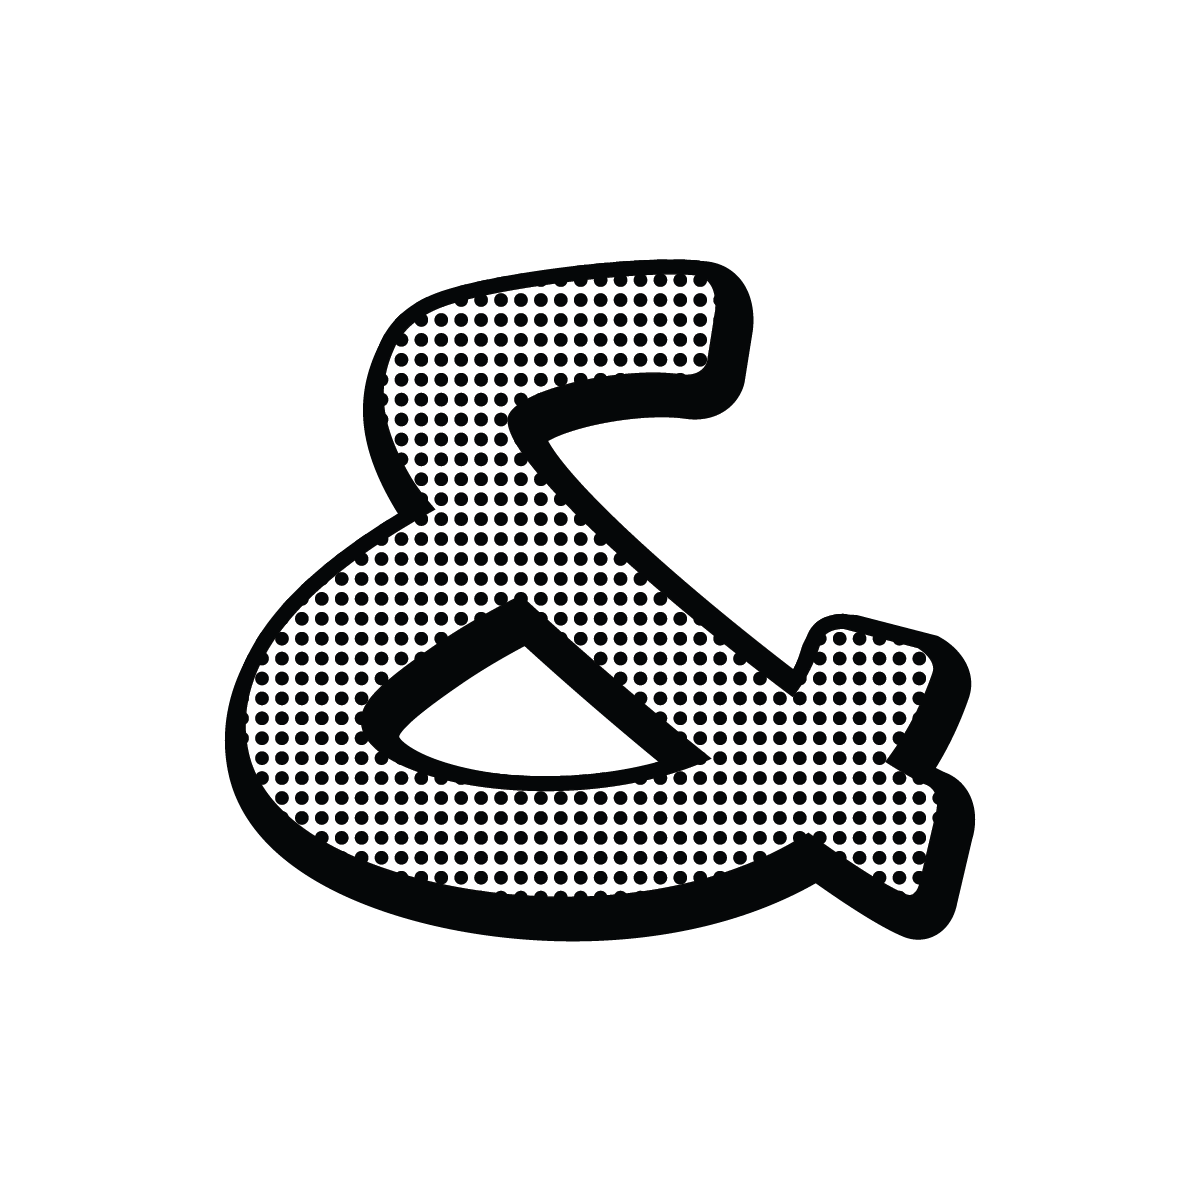 Ampersand_Grid_02_old-11